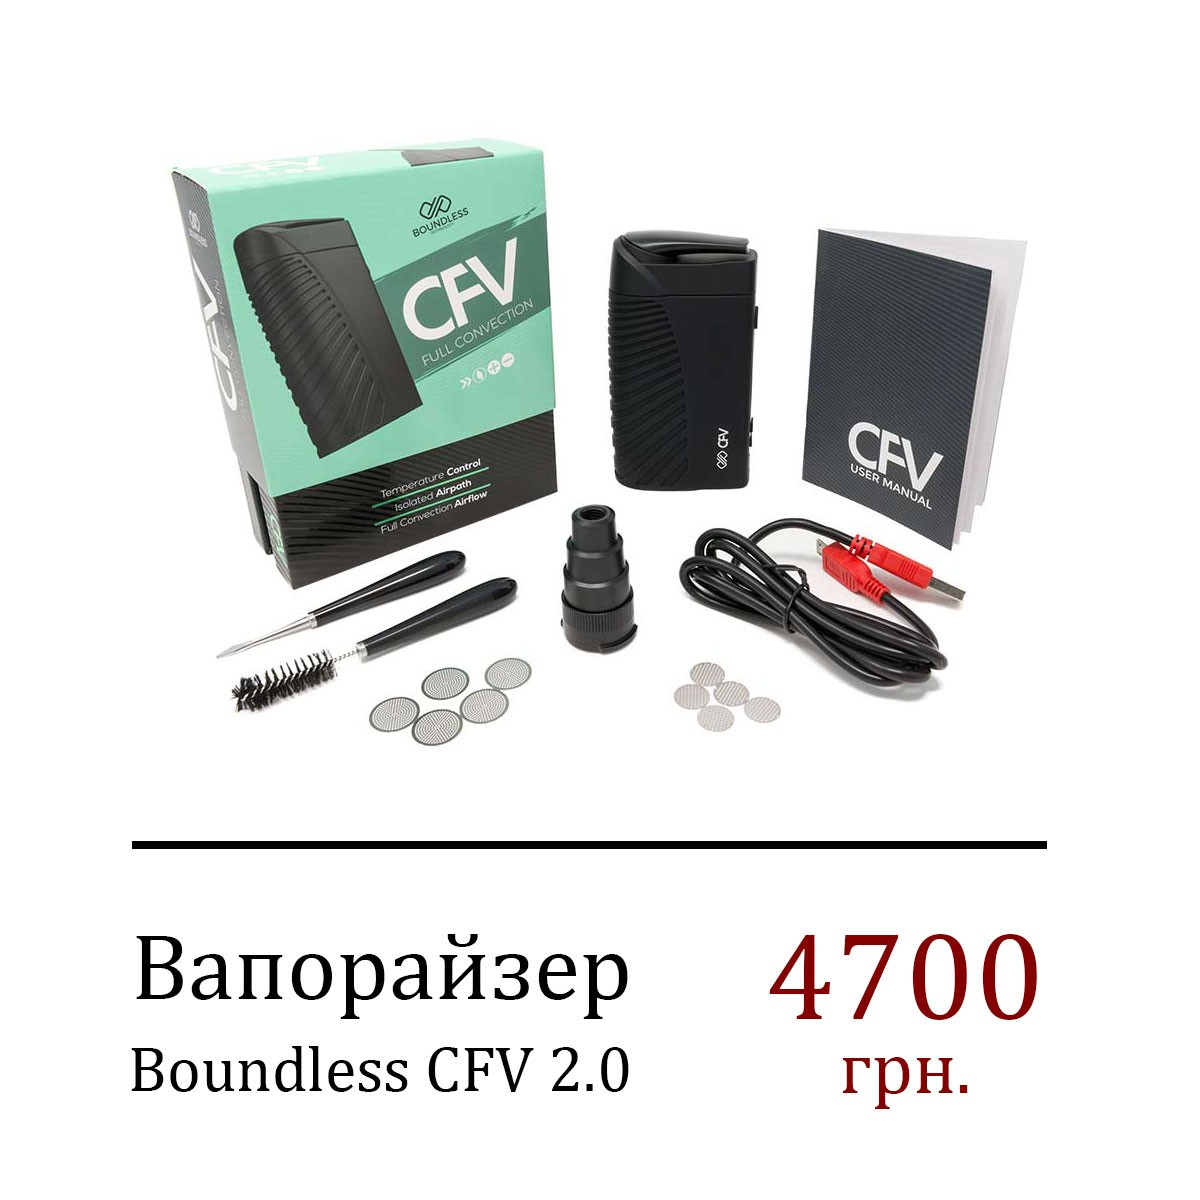 Вапорайзер Boundless CFV 2.0